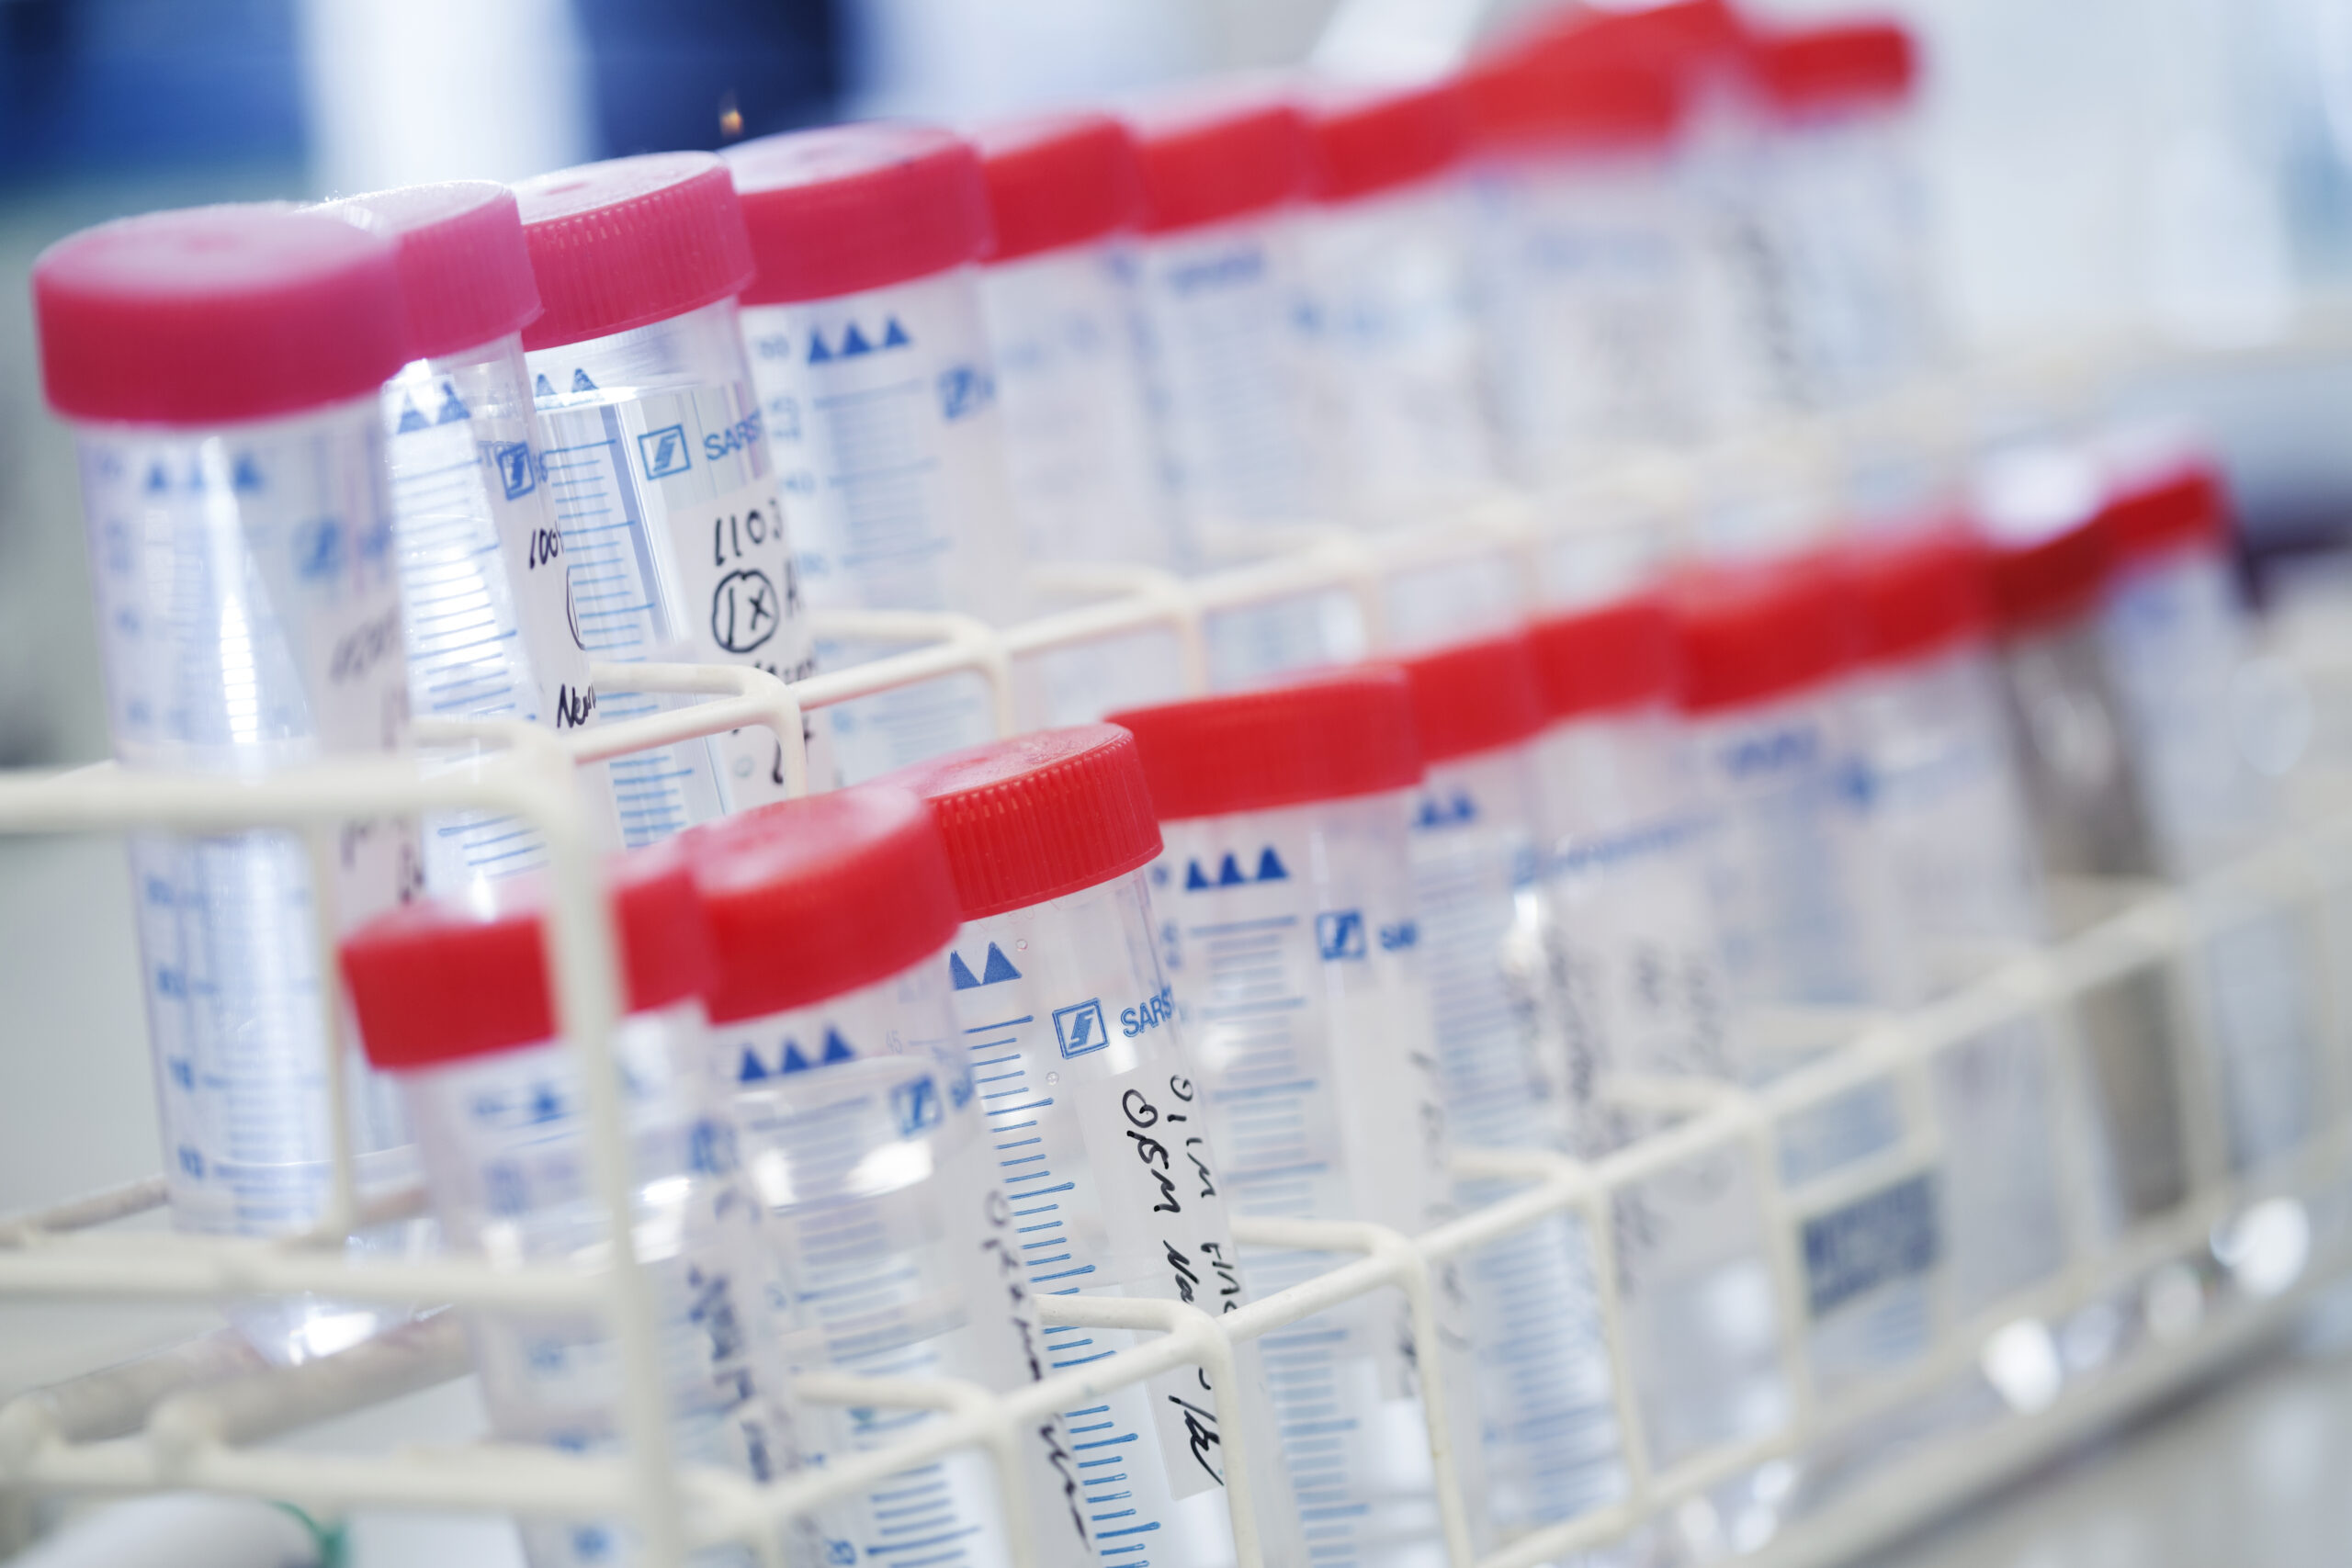 Biomarkers - valuable tools for making informed decisions